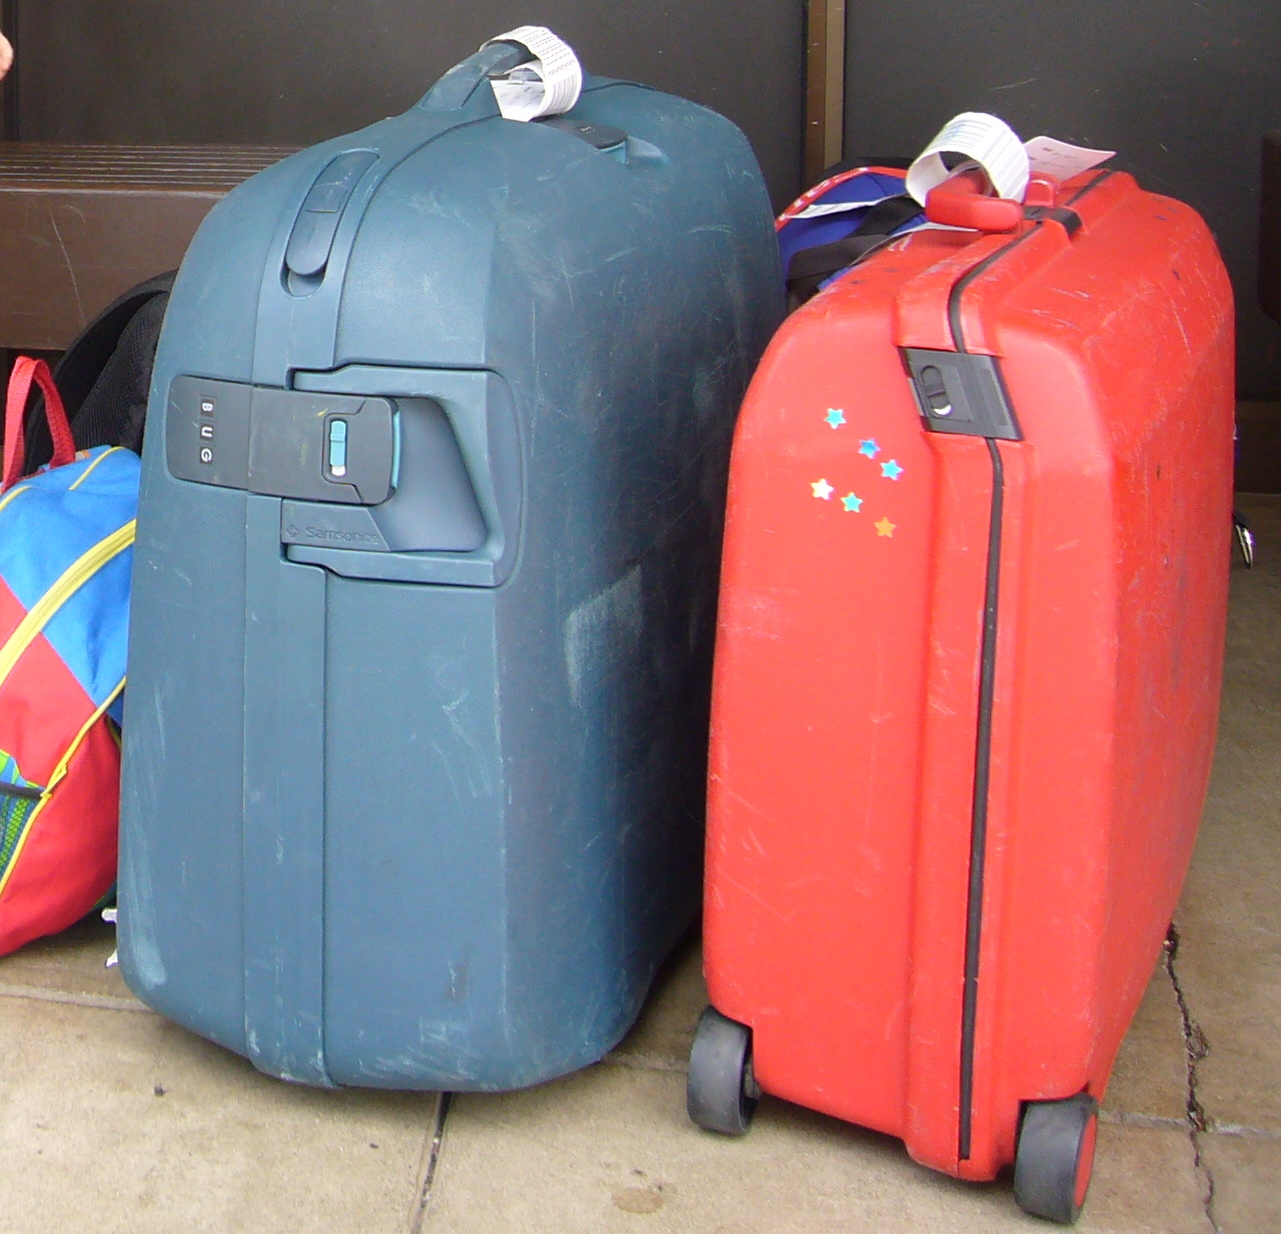 Traveling With Kids: Better safe than sorry: 10 luggage & packing tips